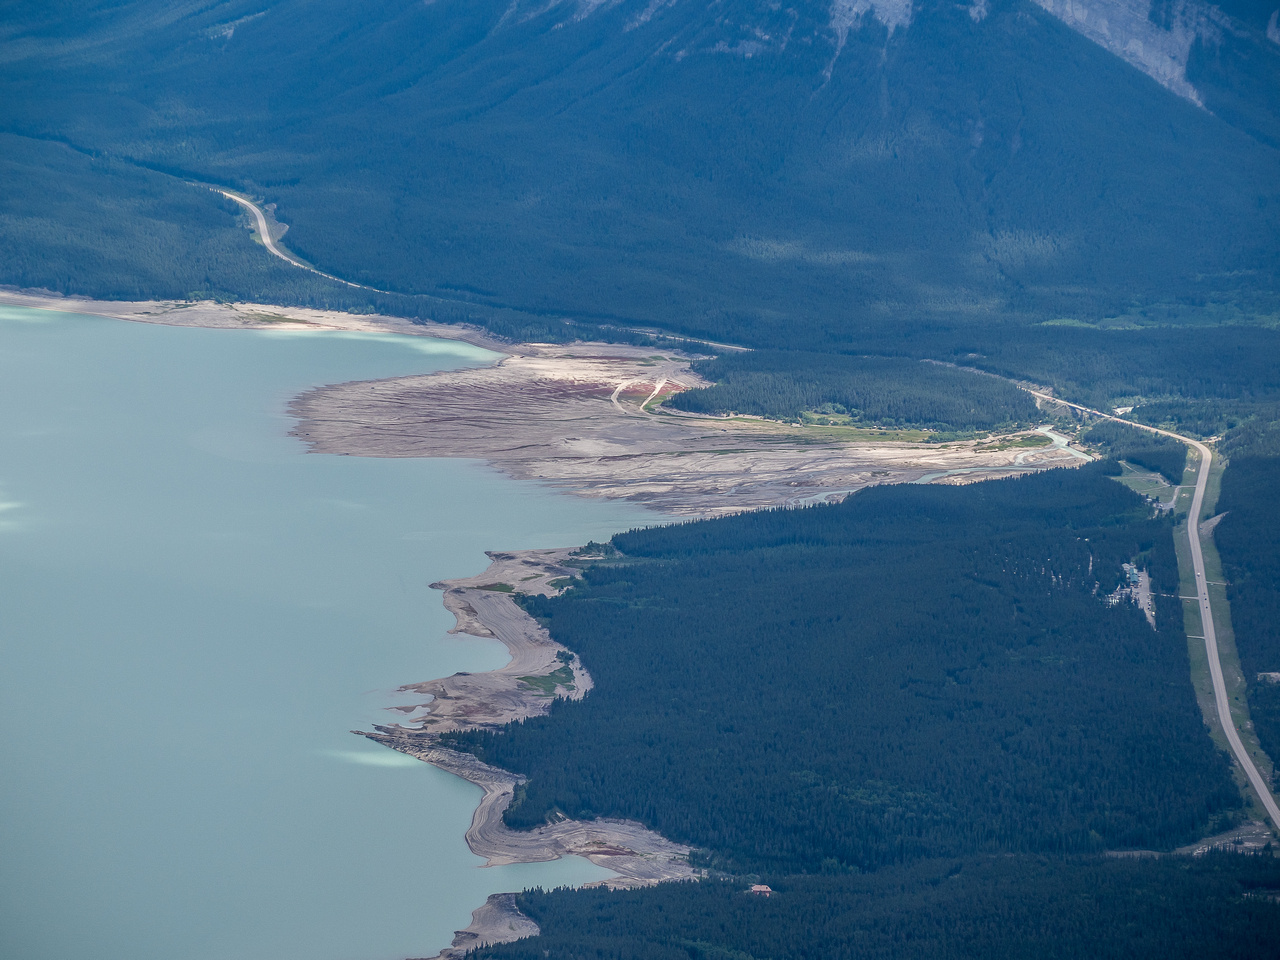 Next to the North Saskatchewan River, the Cline River is the biggest contributing water source to Abraham Lake.